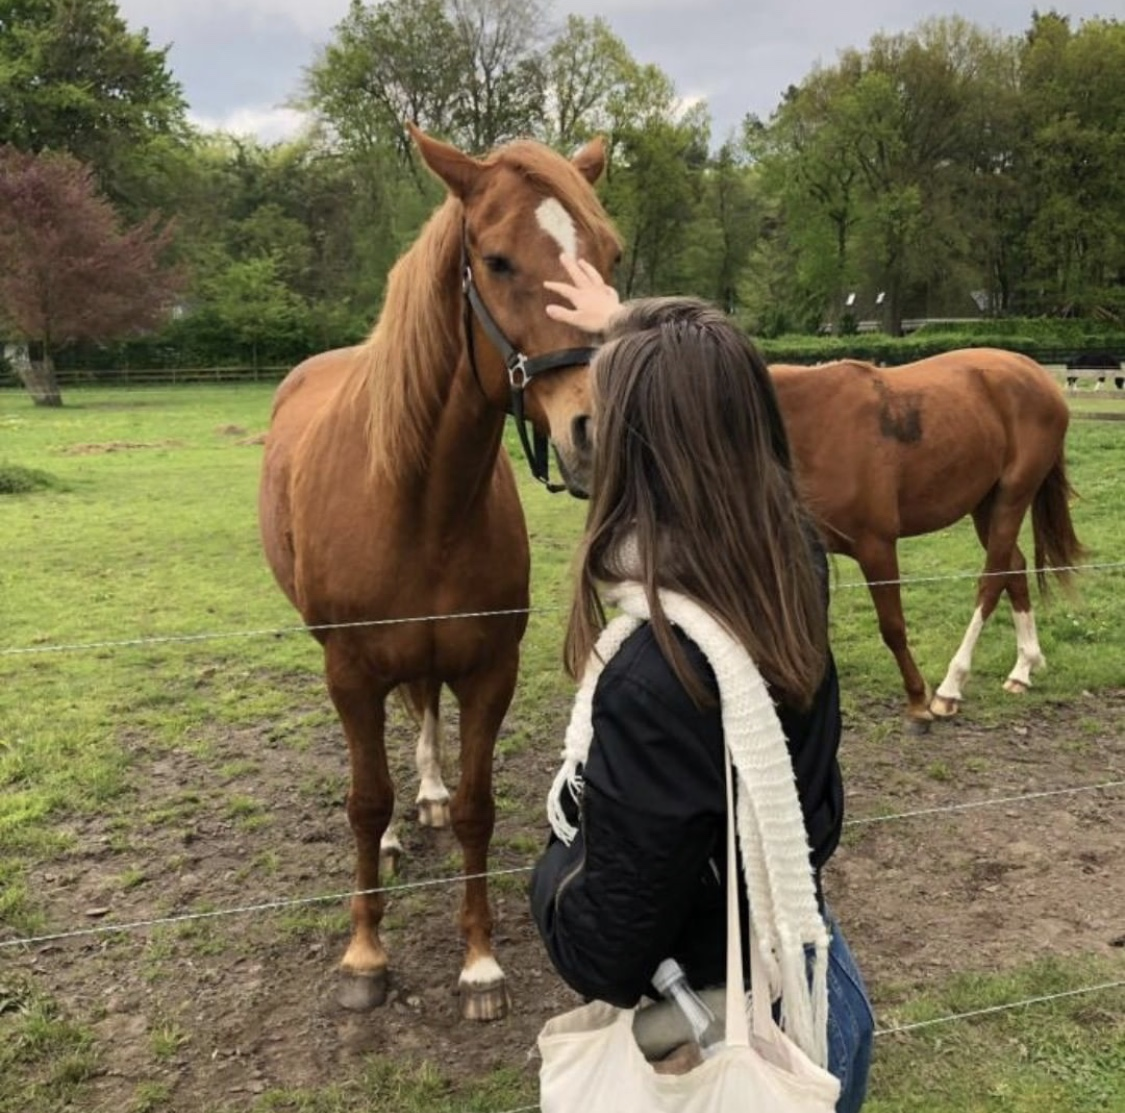 Ethical reasons why I don't approve horse-riding